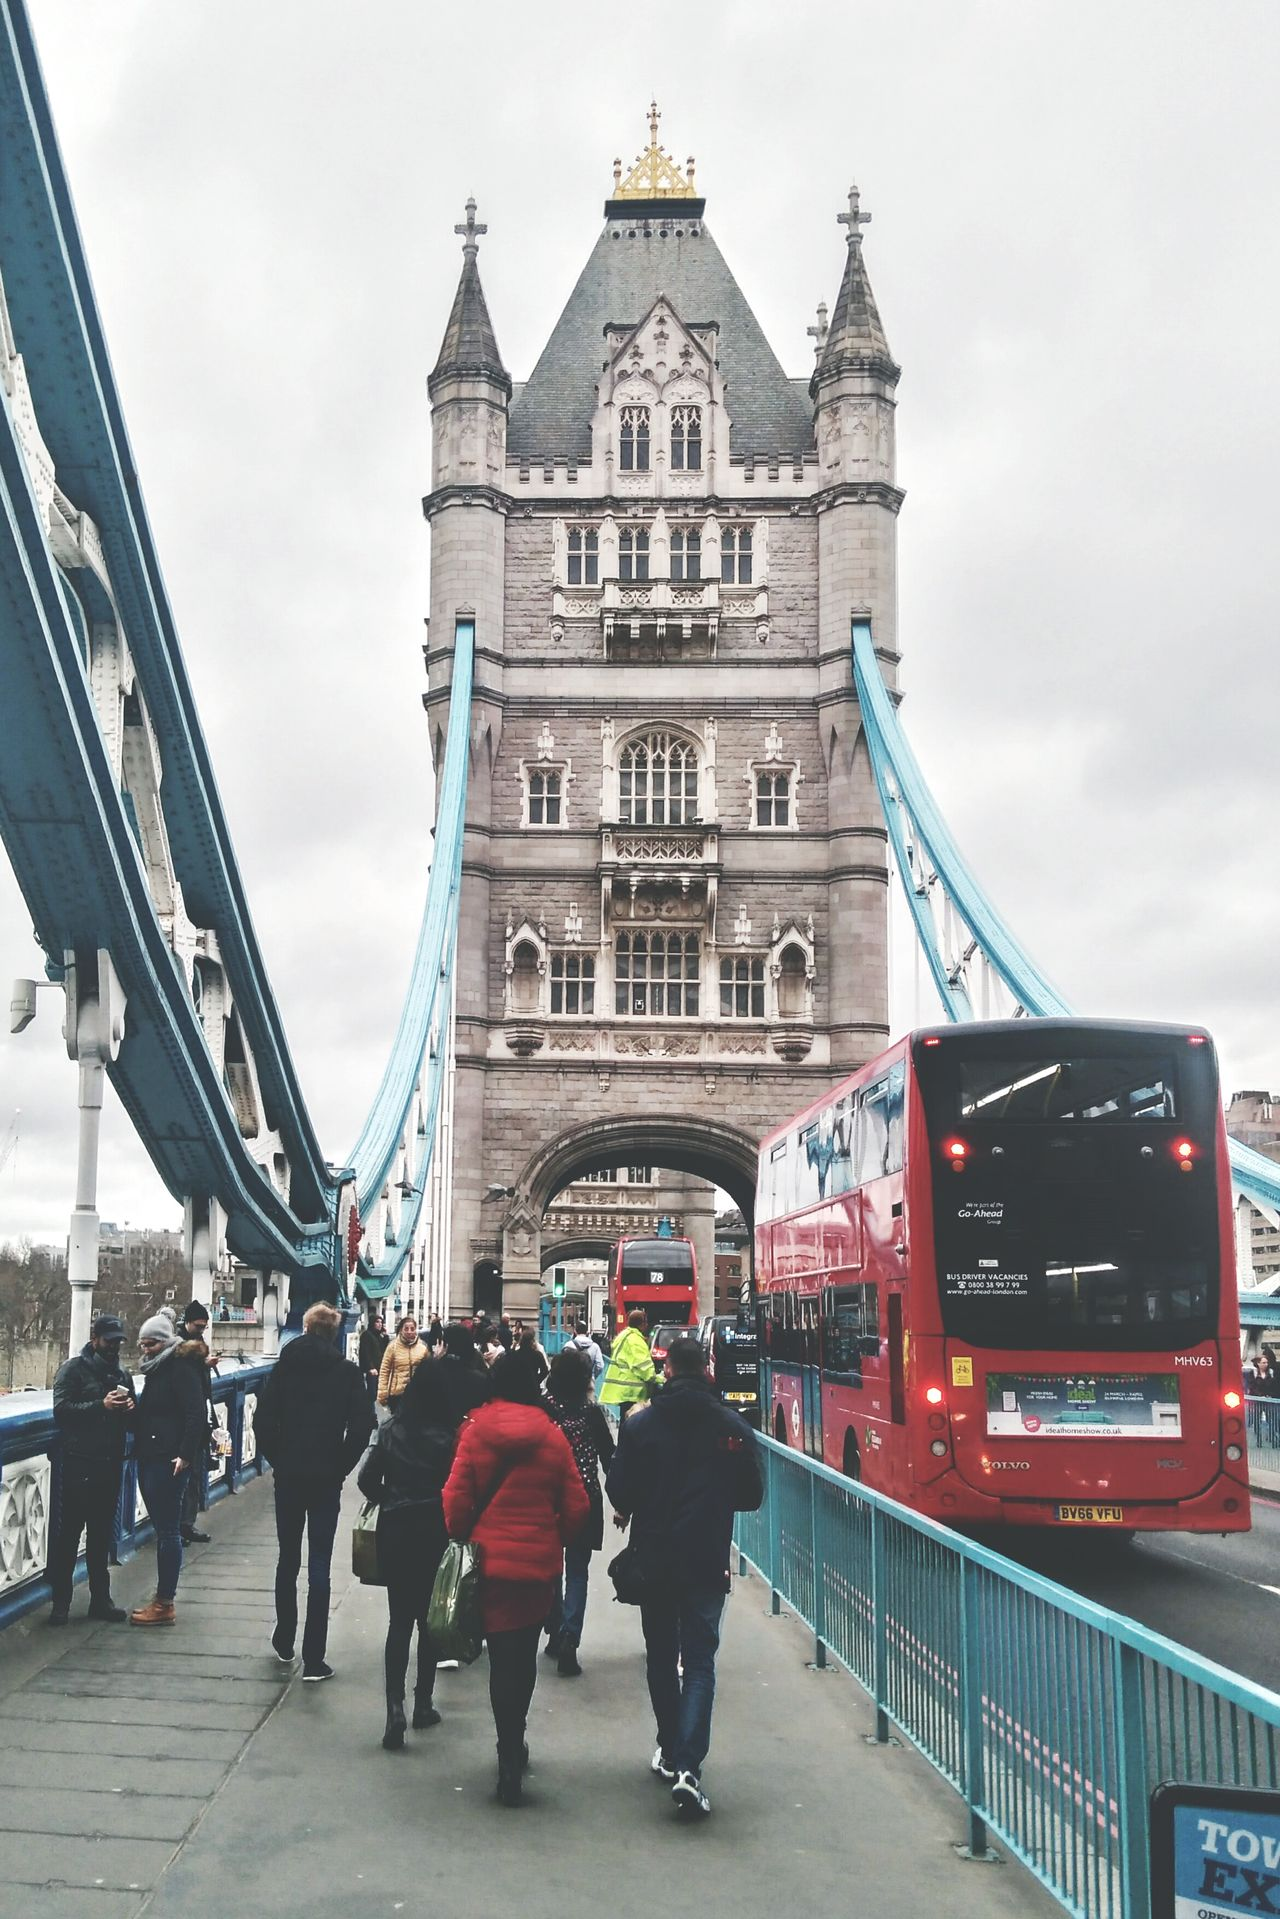 London England, UK England 🇬🇧 United Kingdom Cityscape Capture The Moment Capturing The Moment Captured Moment The Way Forward Tower Bridge Tower Bridge, London Travel Destinations Travel Traveling Travel Photography People Cultures City Travel Tourism Tower Bridge London Tower Bridge🌉 Tower Bridge Walkways Towerbridge Tower Br